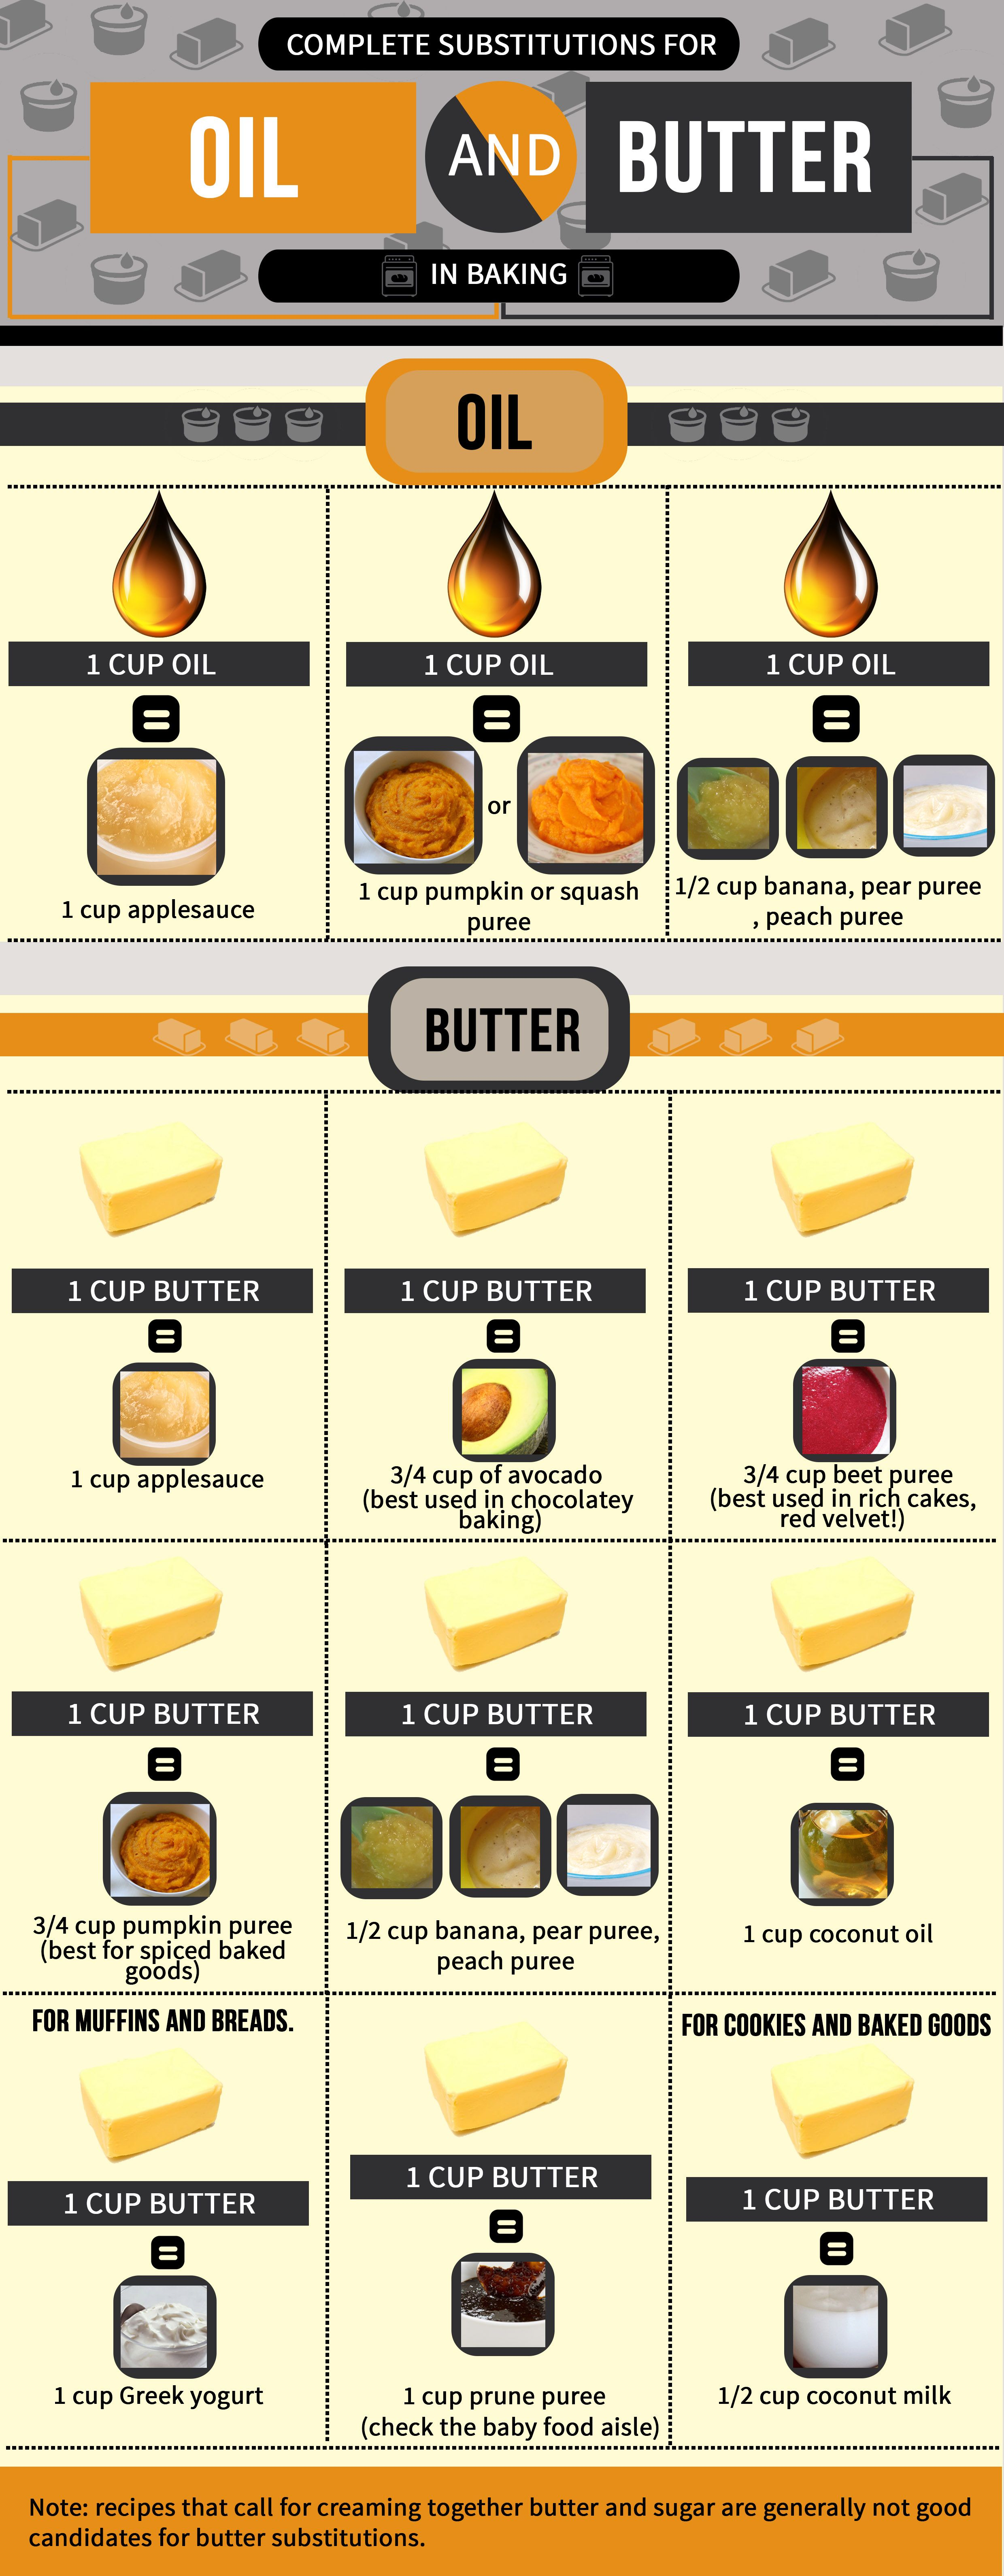 Butter and oil substitutes butter oil and baking substitutions butter and oil substitutes alternatives to butter and oil nvjuhfo Images